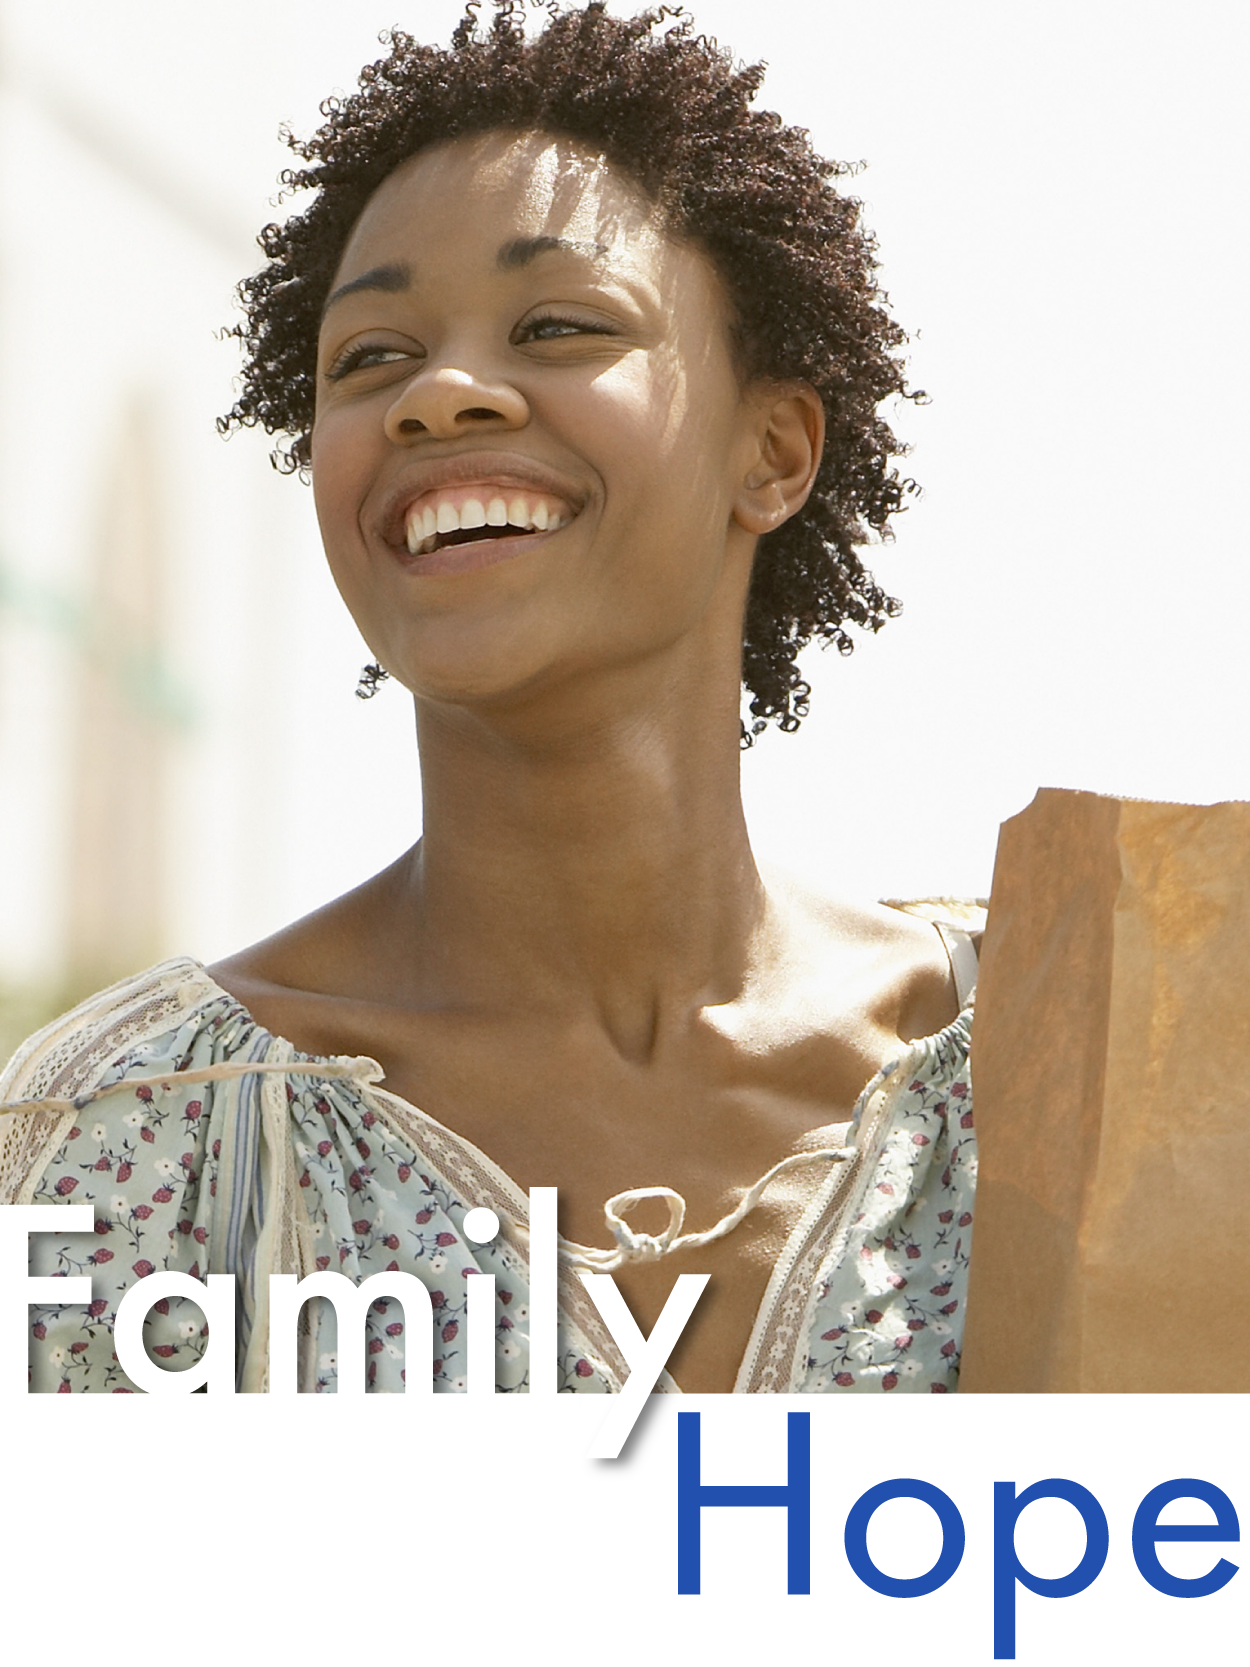 fulshear-outreach-and-development-family-hope.png